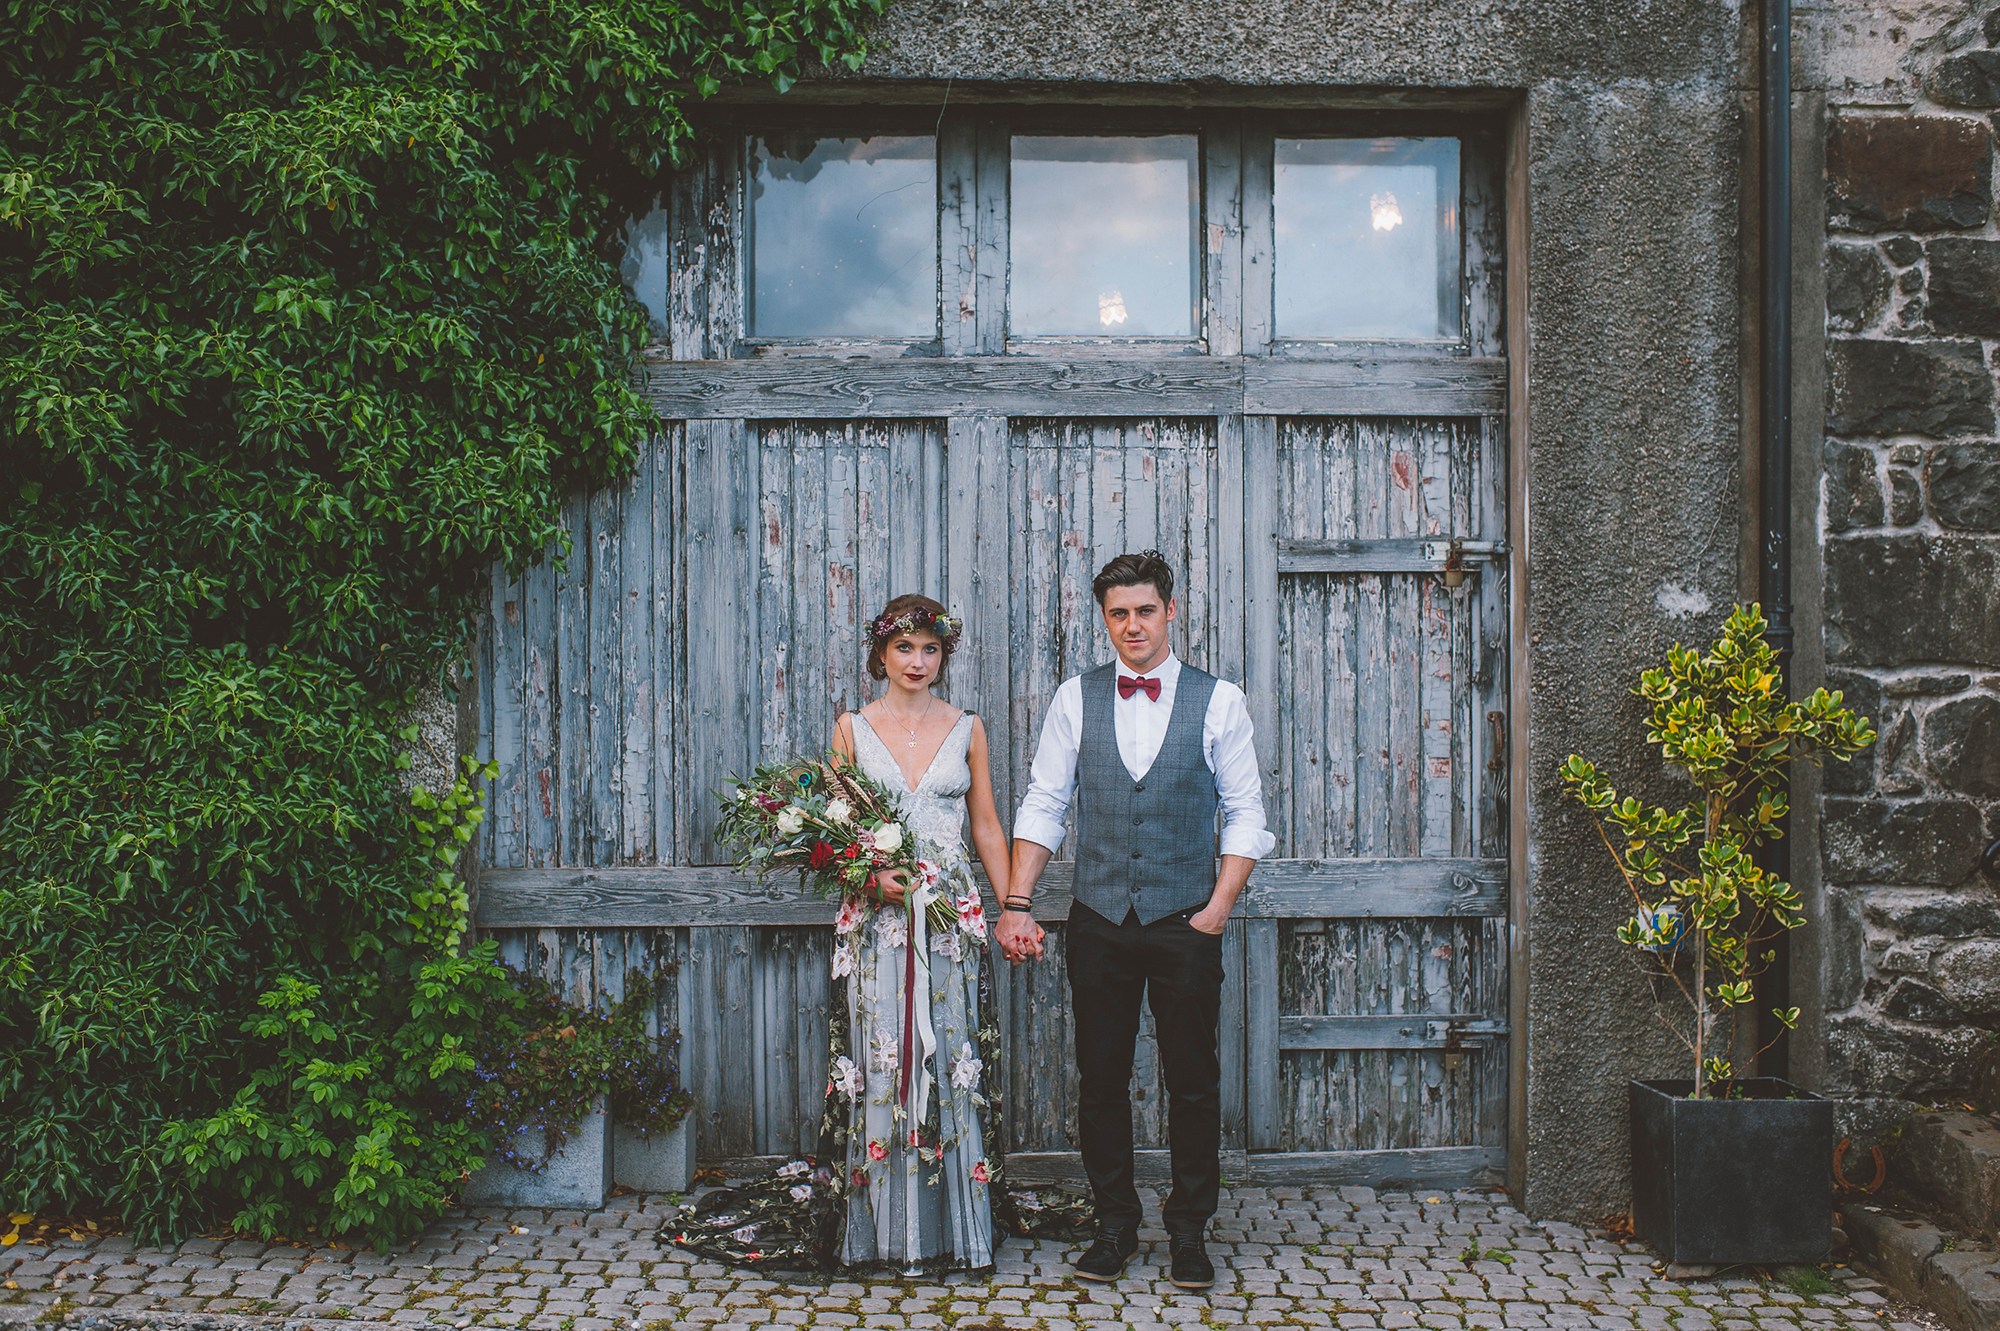 Frances_meaney_wedding_photographer_northern_ireland_inspire=weddings_6.jpg